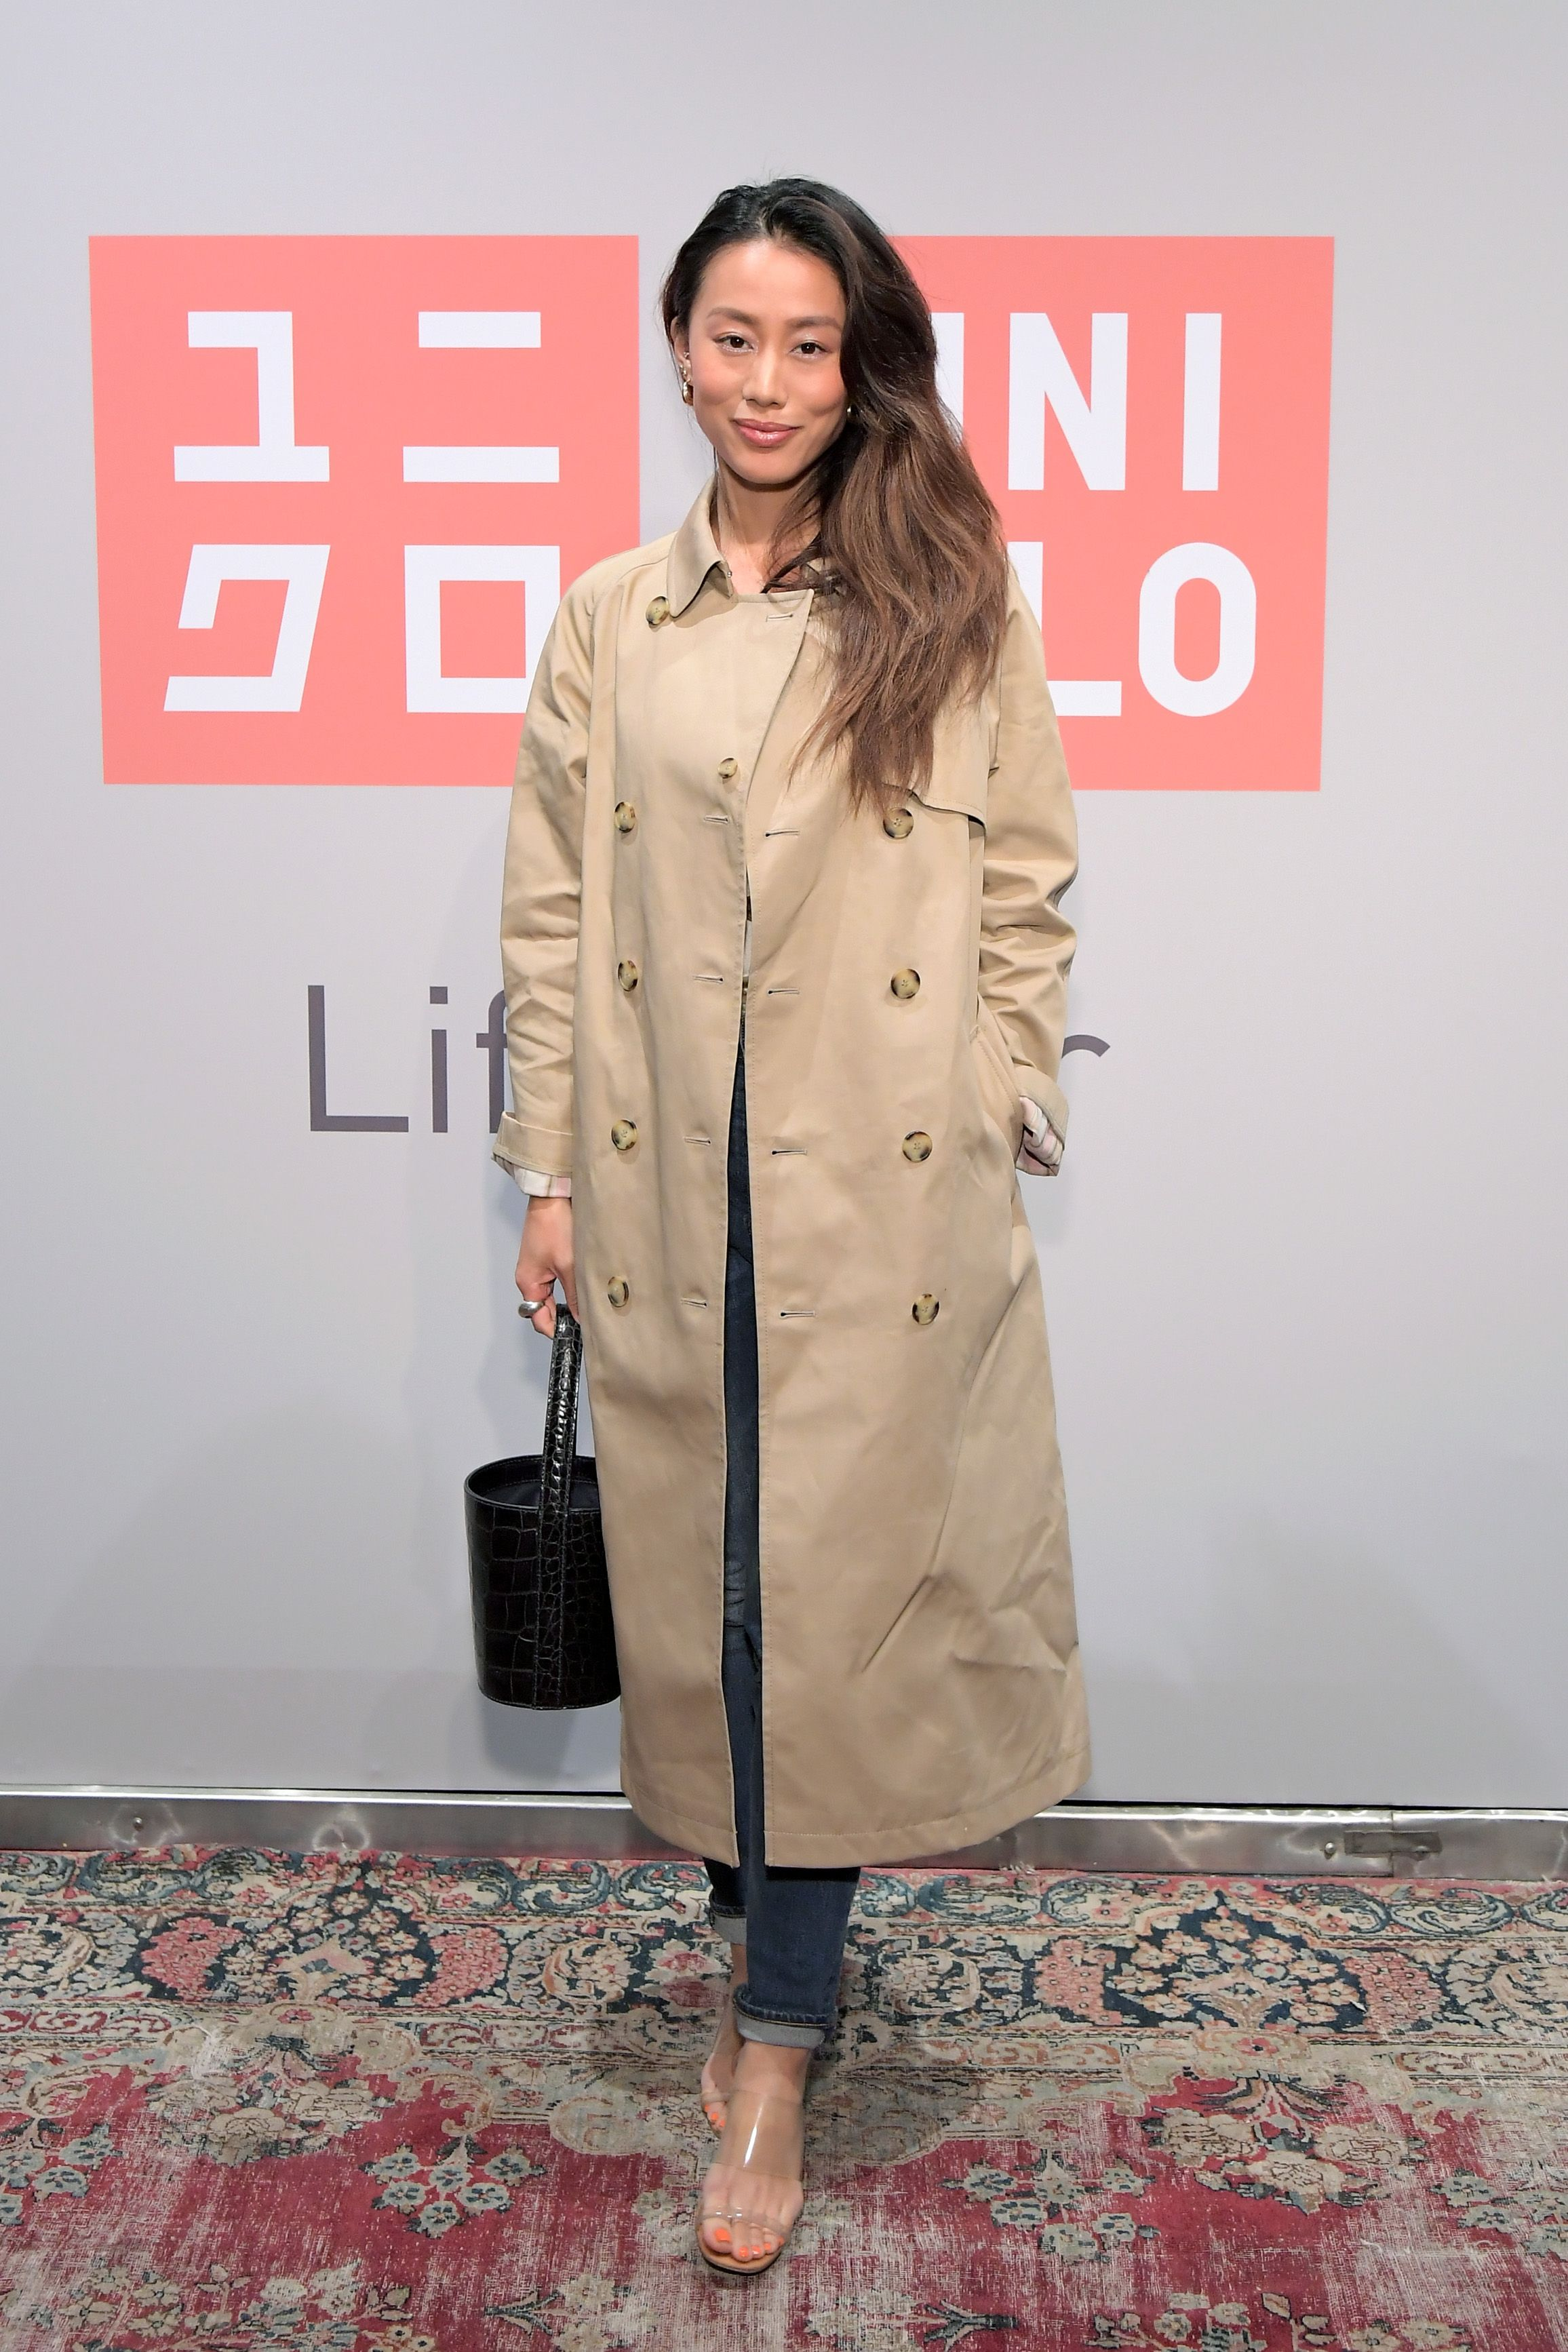 Jenny Ong Jenny Ong attends the UNIQLO 2019 Collections Celebration at Smogshoppe in Los Angeles, California on March 7.